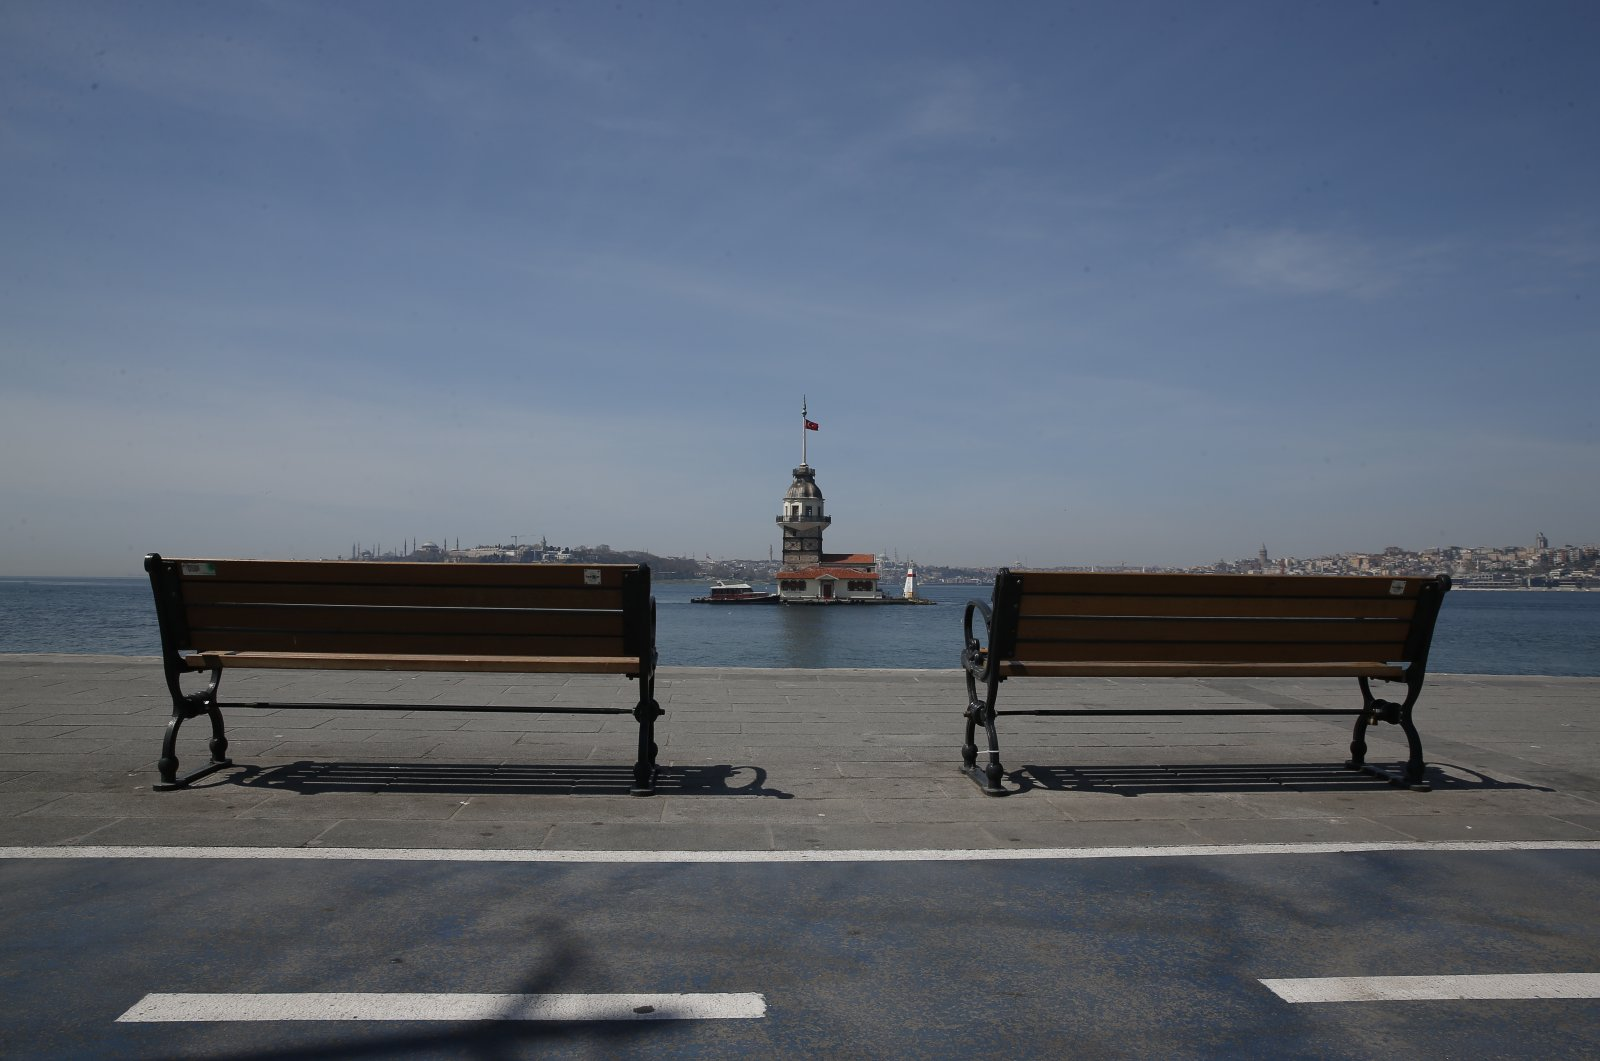 Istanbul's iconic Maiden's Tower flanked by empty benches by the Bosporus Strait, April 19, 2020. (AP Photo)